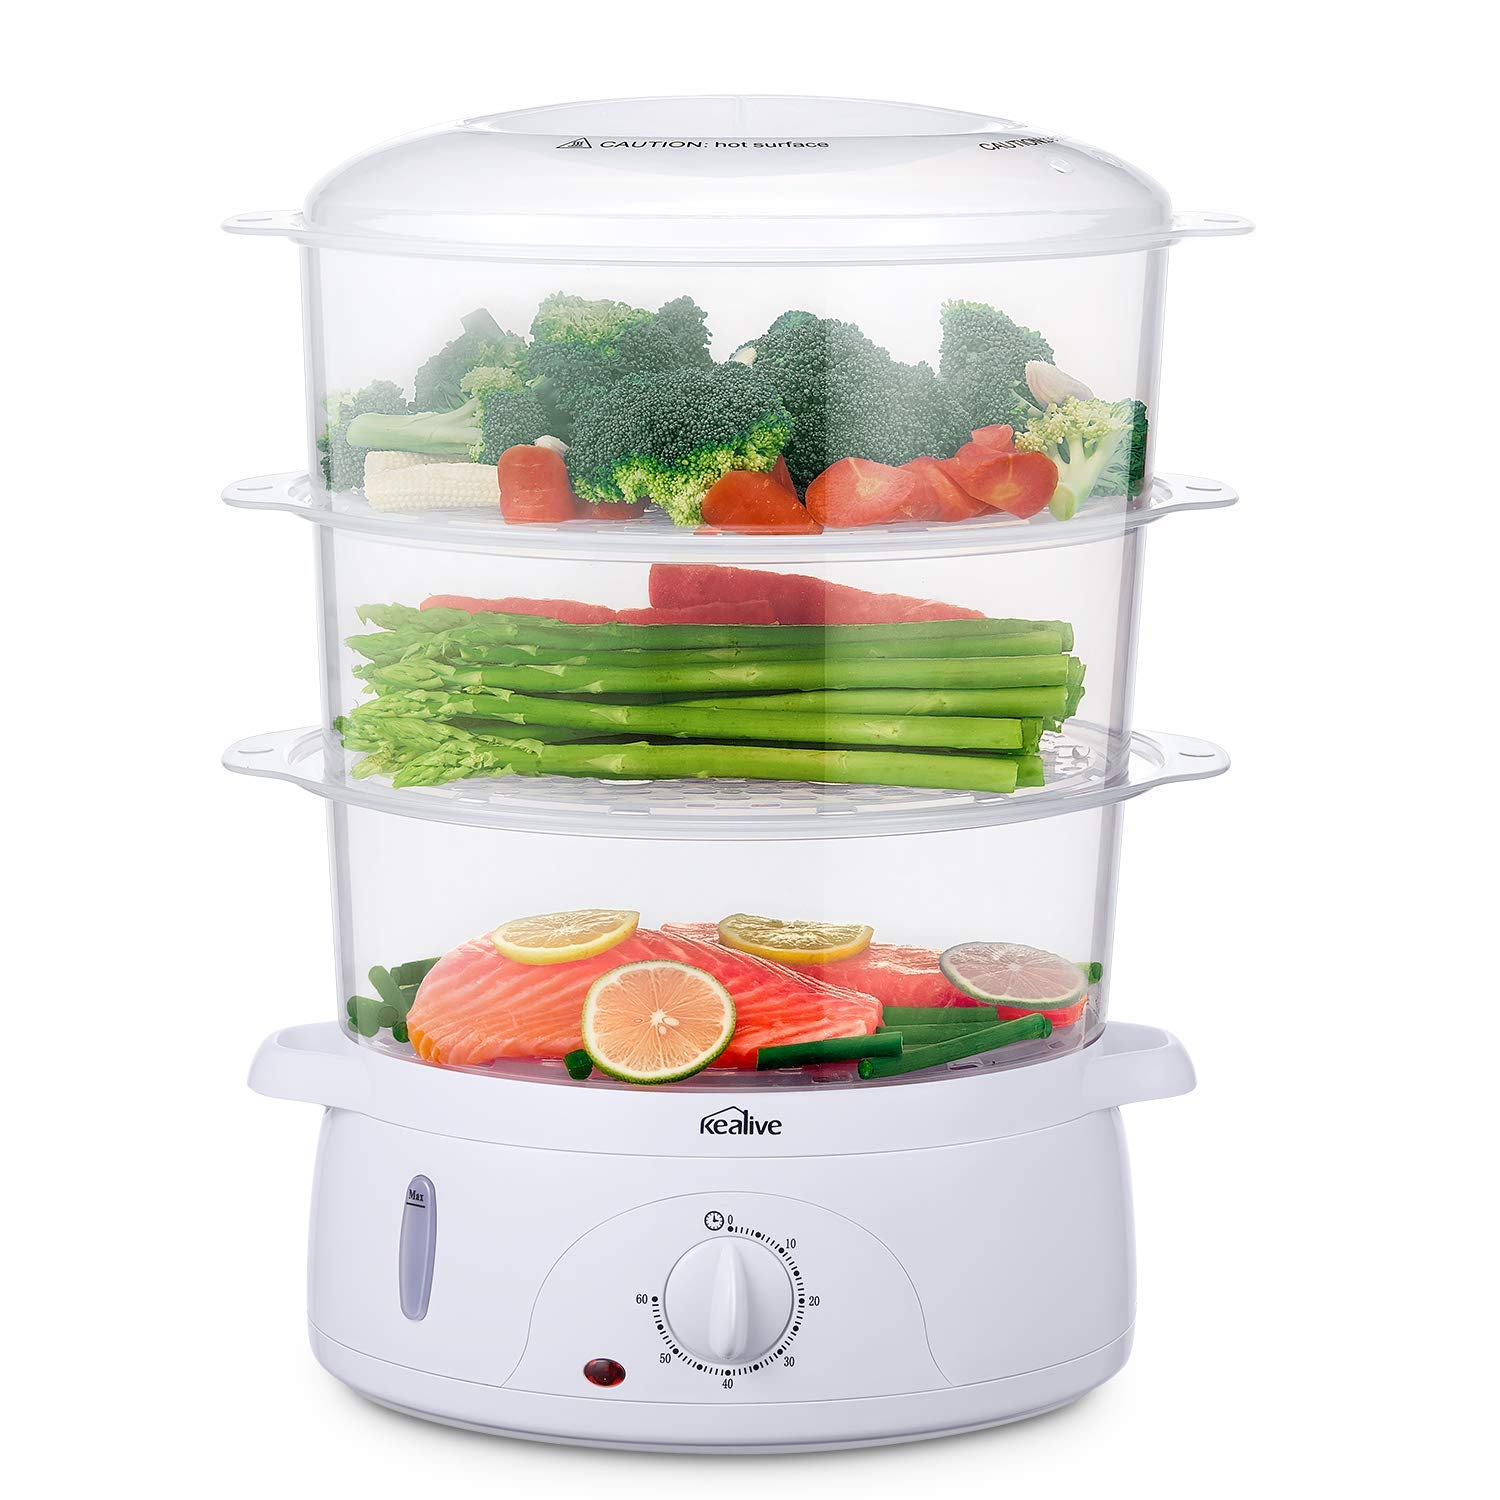 Food Steamer, Vegetable Steamer BPA-Free with Timer and 3 Tier Stackable Baskets, Electric Steamer Pot Cooker Built-in Rice Bowl , 9.5 Quart Capacity and 800W Fast Heat Up, by Kealive HY-4401